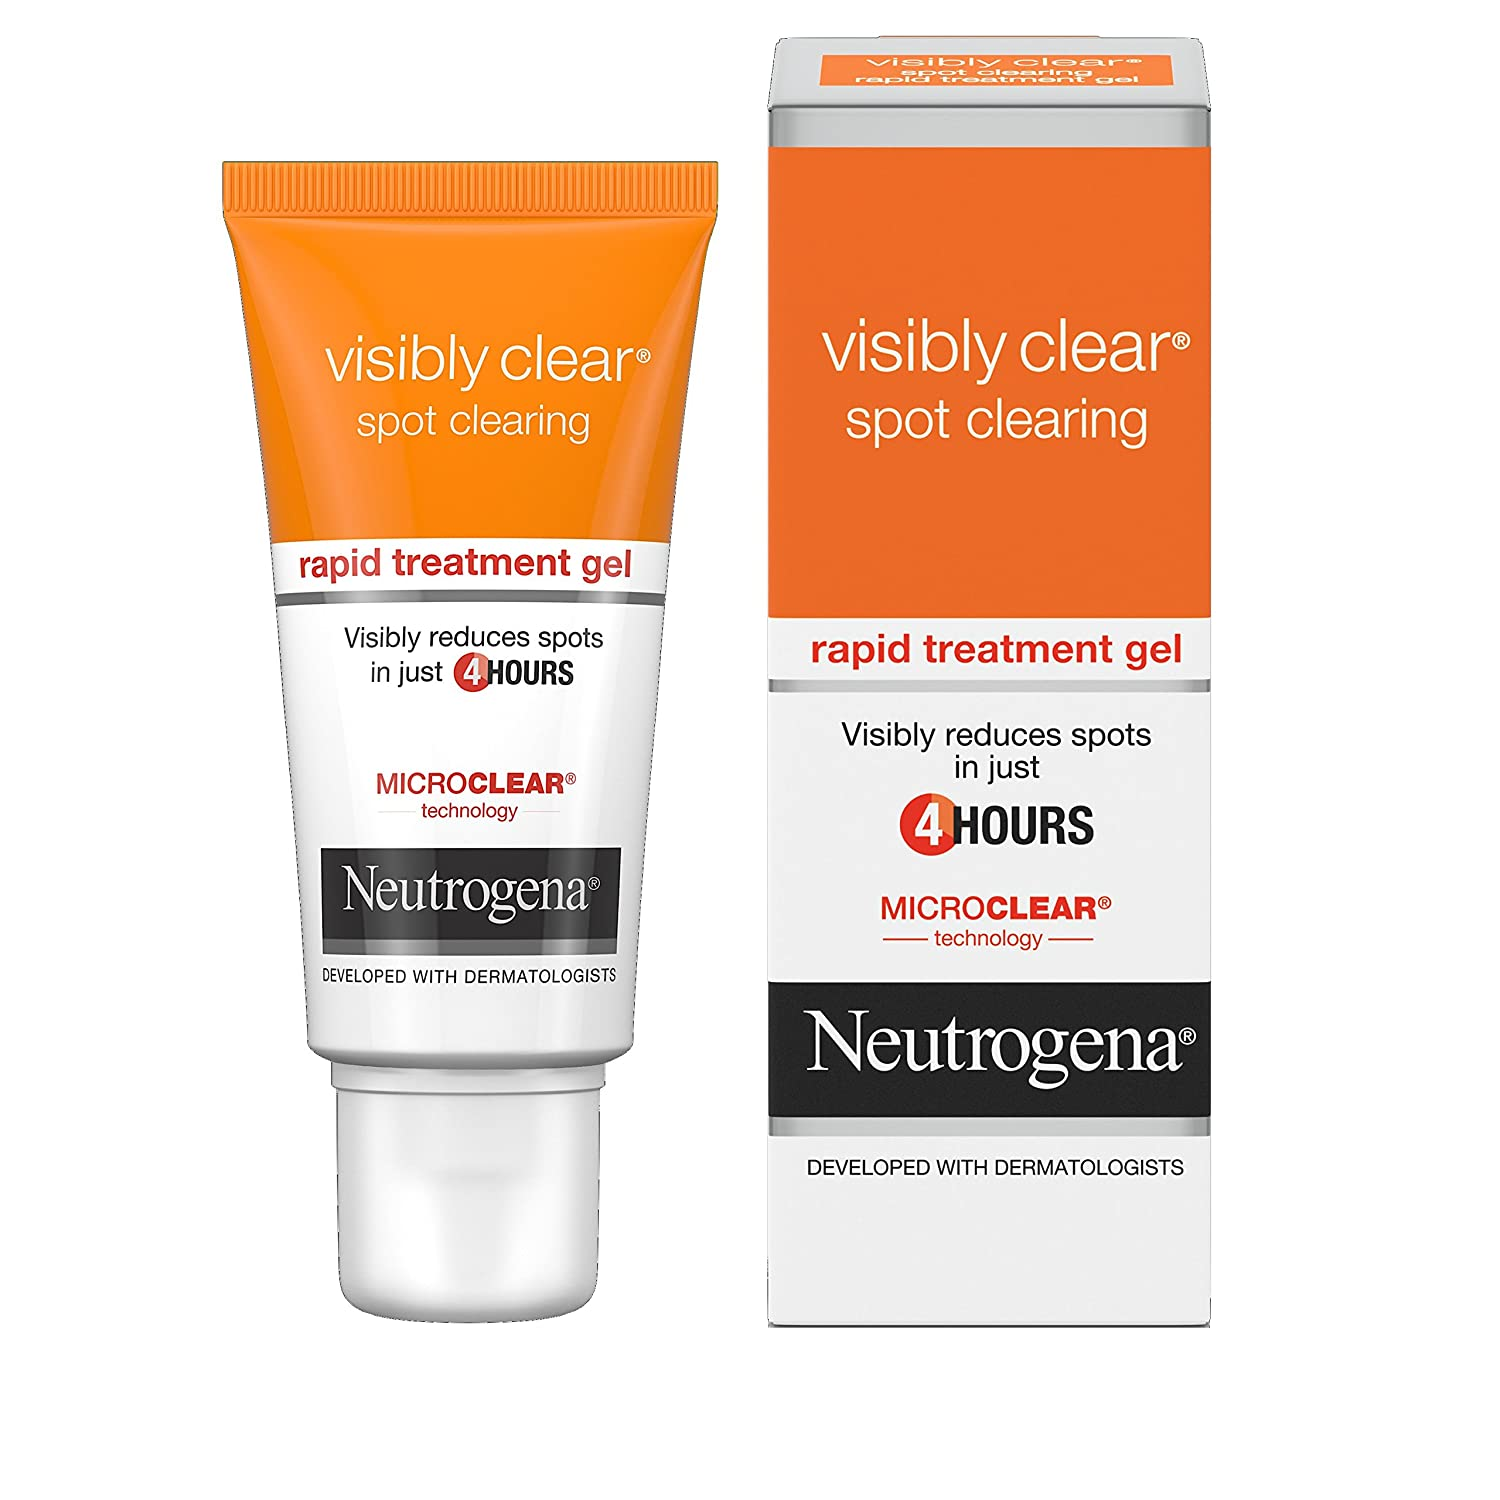 neutrogena acne treatment review